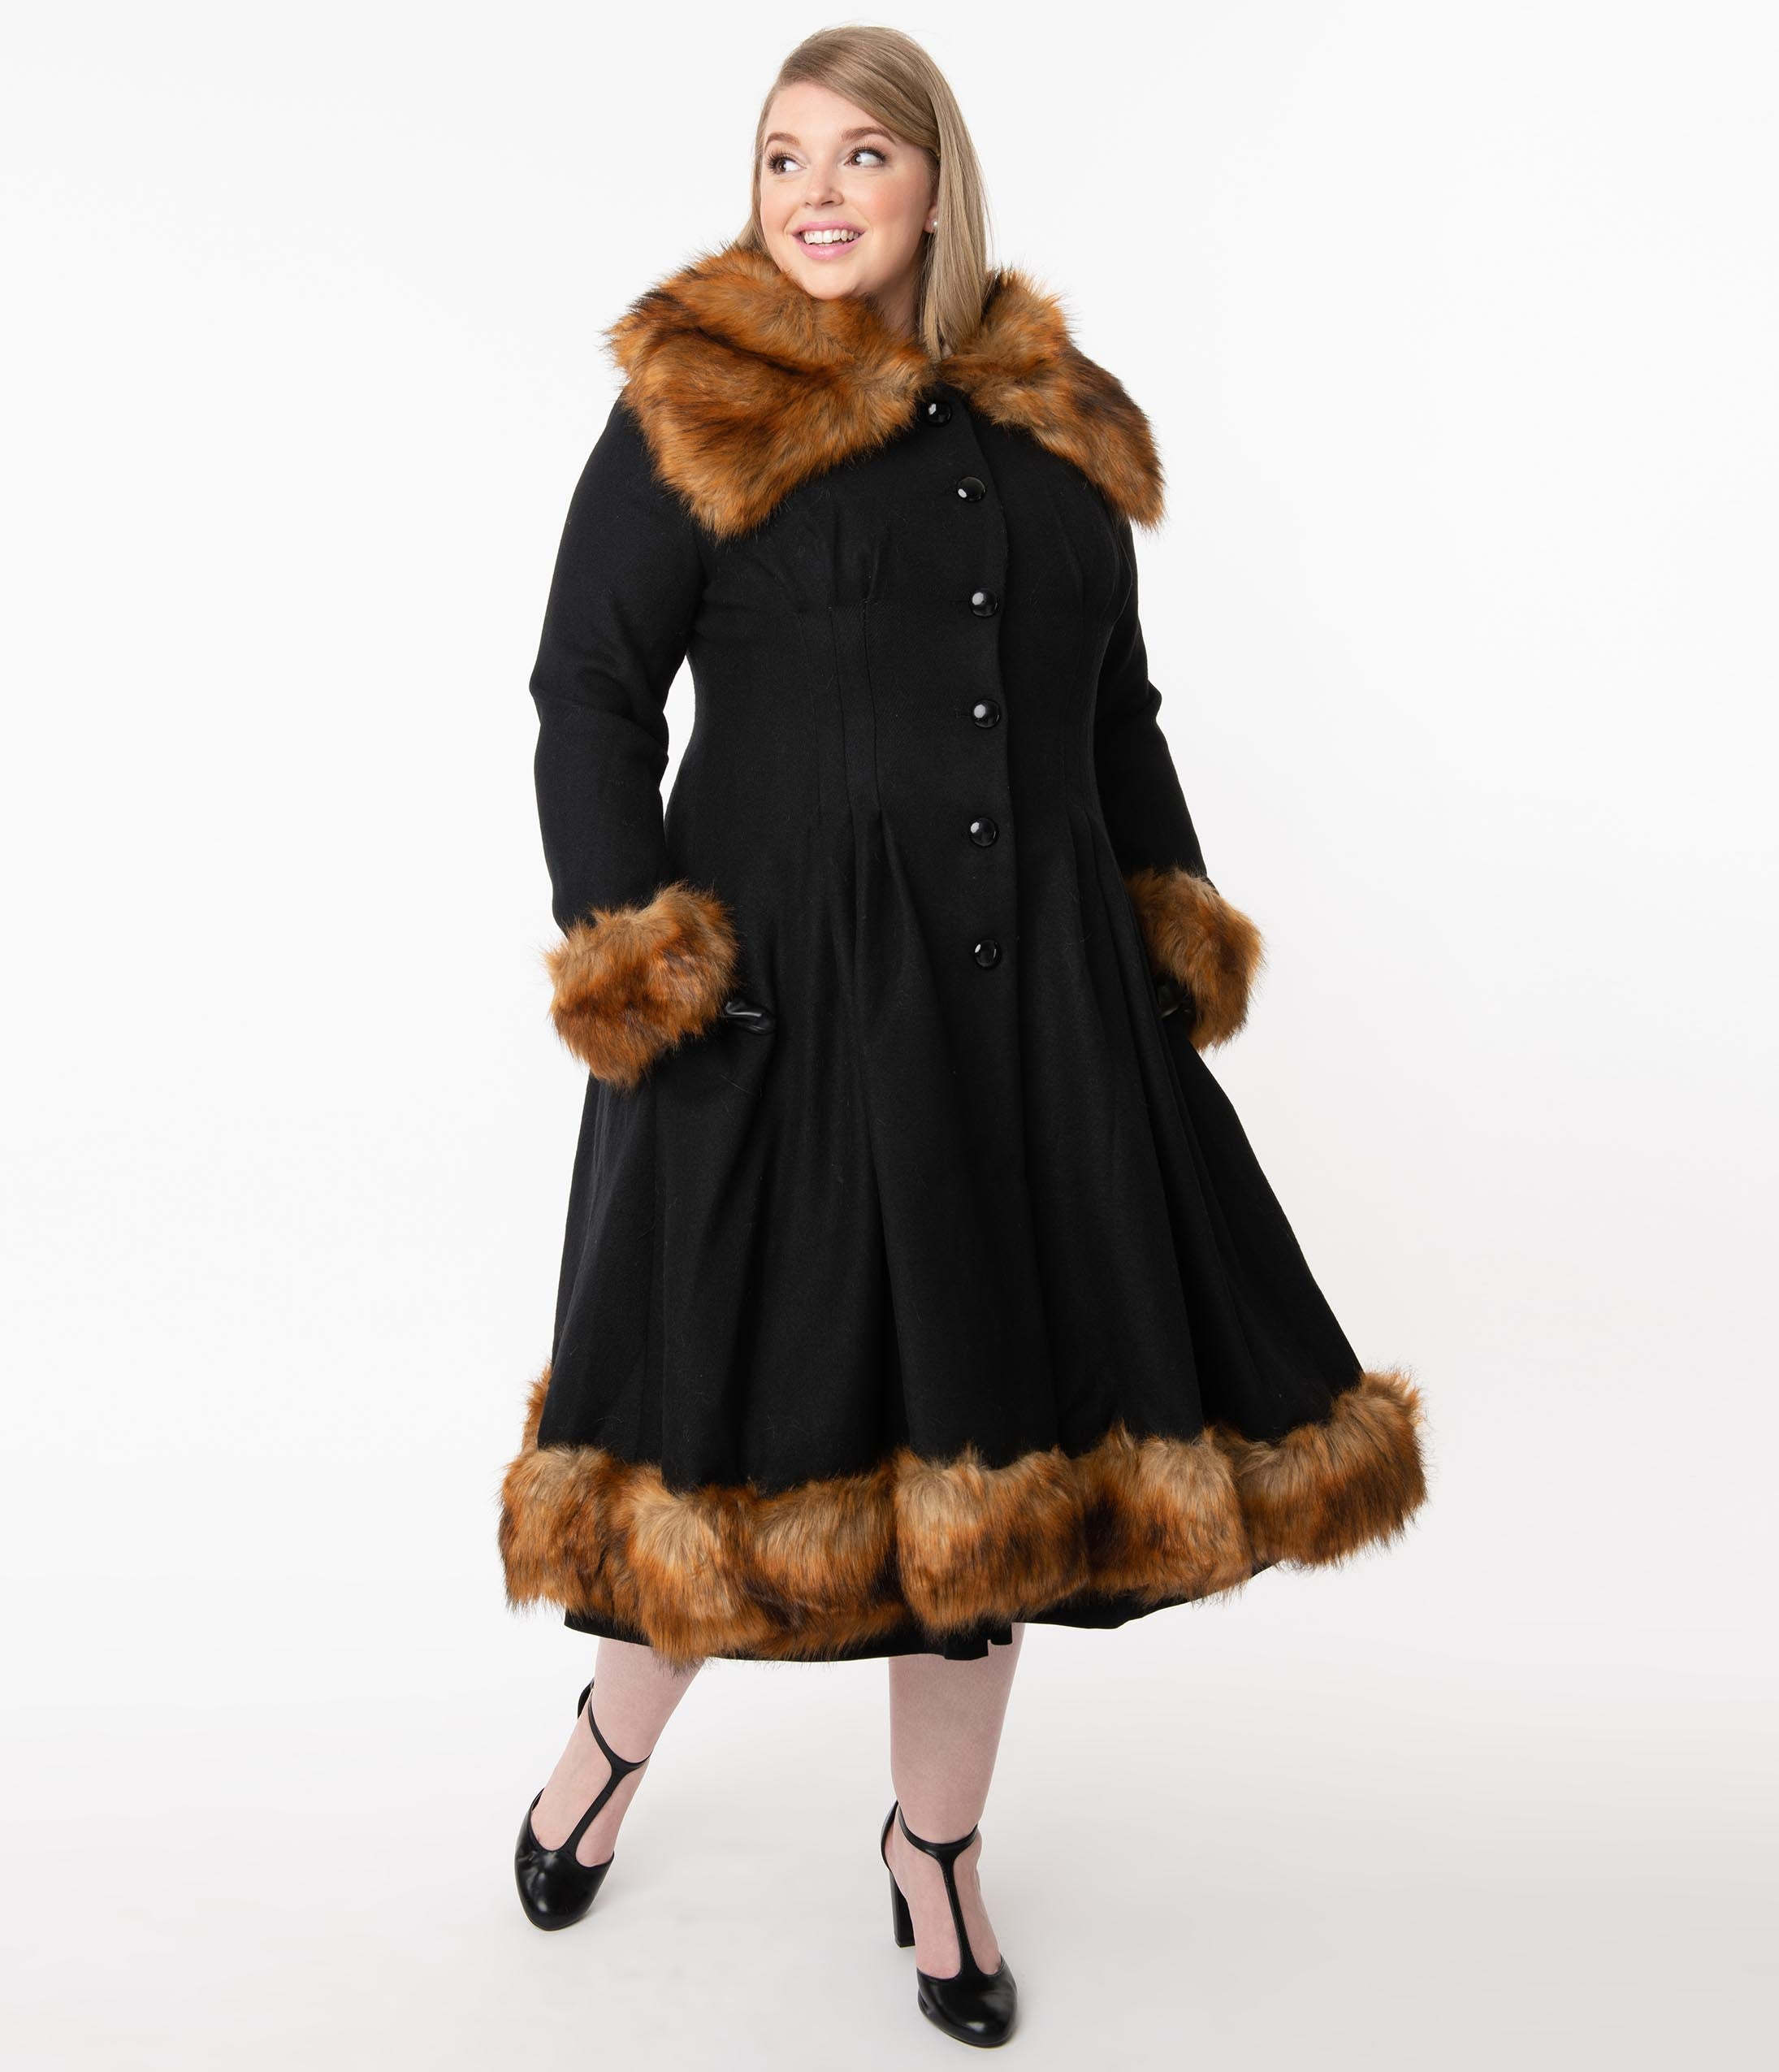 1930s Style Coats, Jackets | Art Deco Outerwear Collectif Plus Size Vintage Black Wool  Fur Pearl Coat $278.00 AT vintagedancer.com